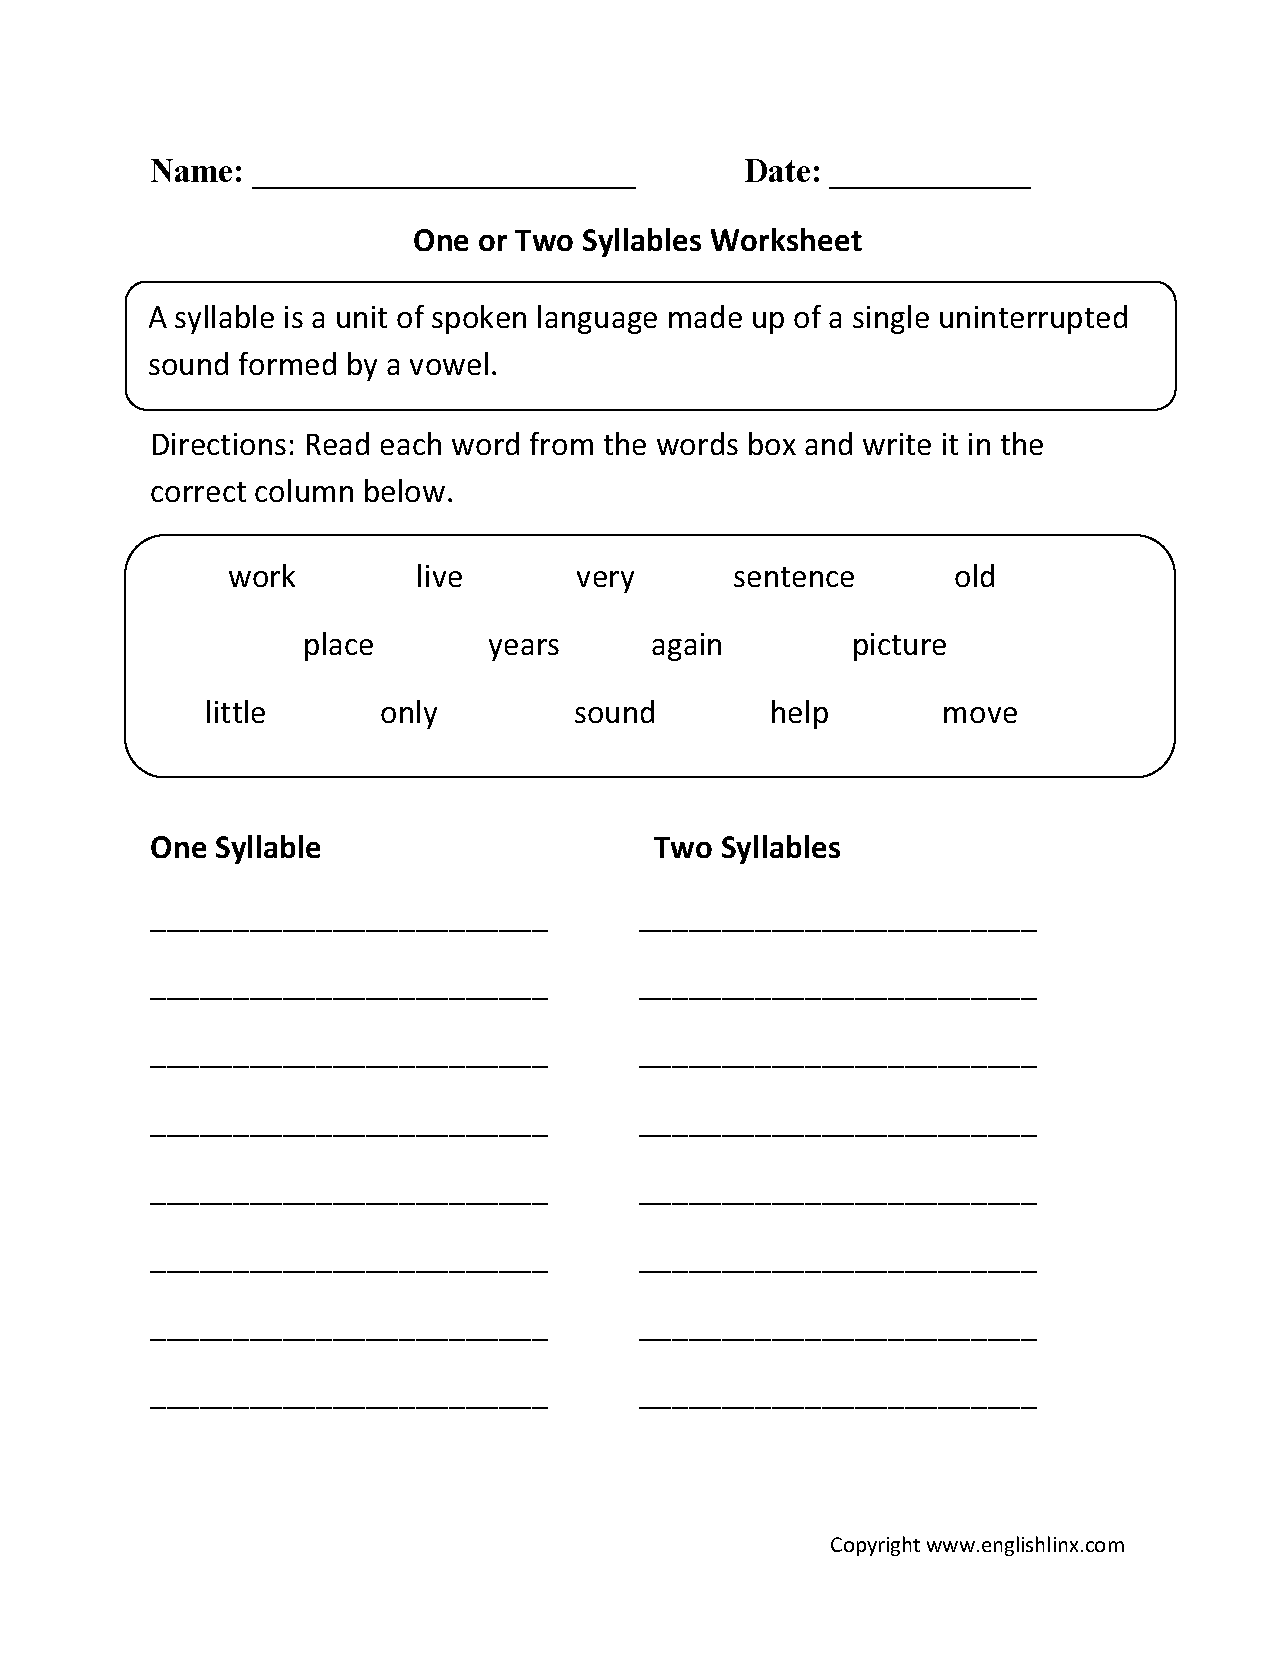 Aldiablosus  Scenic Englishlinxcom  Syllables Worksheets With Fair Syllables Worksheets With Lovely Simple English Worksheets Also Fourth Grade Addition Worksheets In Addition Homophone Worksheets For Rd Grade And Maths Grade  Worksheets As Well As English Verb Conjugation Worksheets Additionally Addition Counting On Worksheets From Englishlinxcom With Aldiablosus  Fair Englishlinxcom  Syllables Worksheets With Lovely Syllables Worksheets And Scenic Simple English Worksheets Also Fourth Grade Addition Worksheets In Addition Homophone Worksheets For Rd Grade From Englishlinxcom